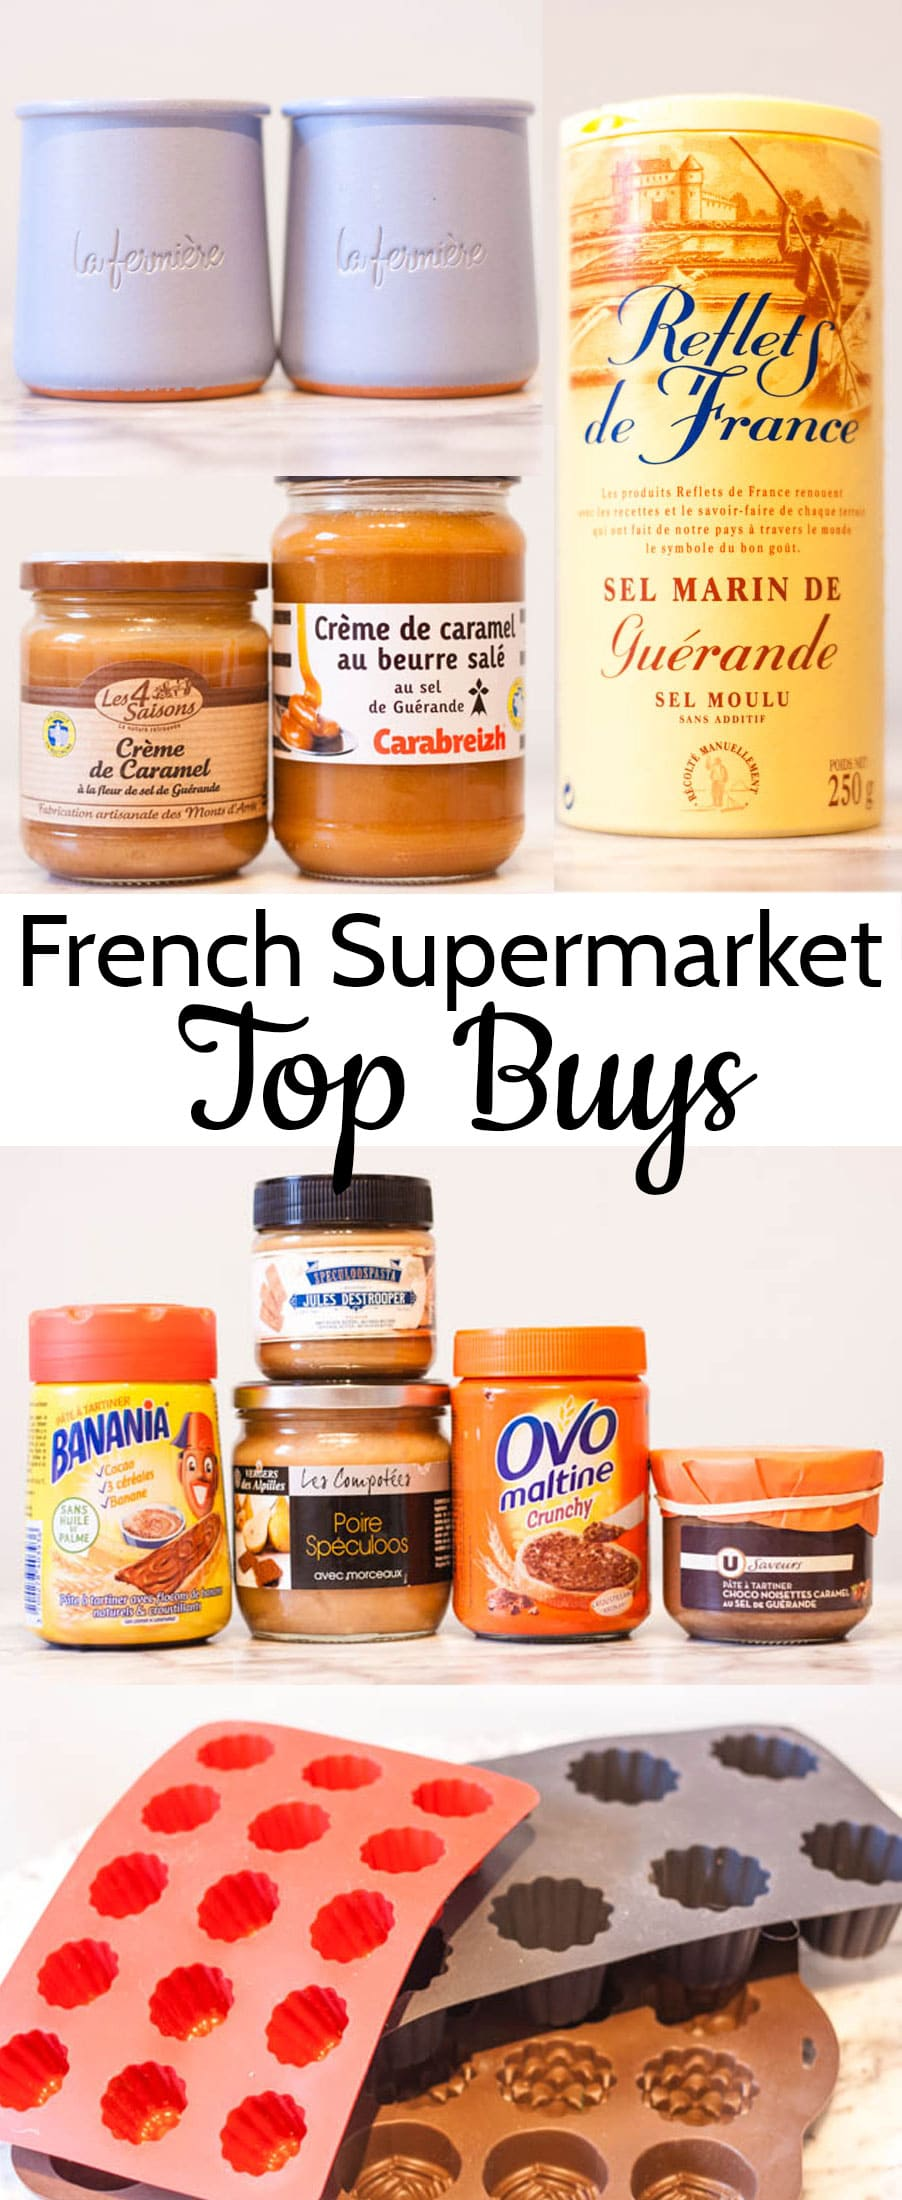 Wondering what to buy in a French supermarket? These are some of our favourite products to hunt out.